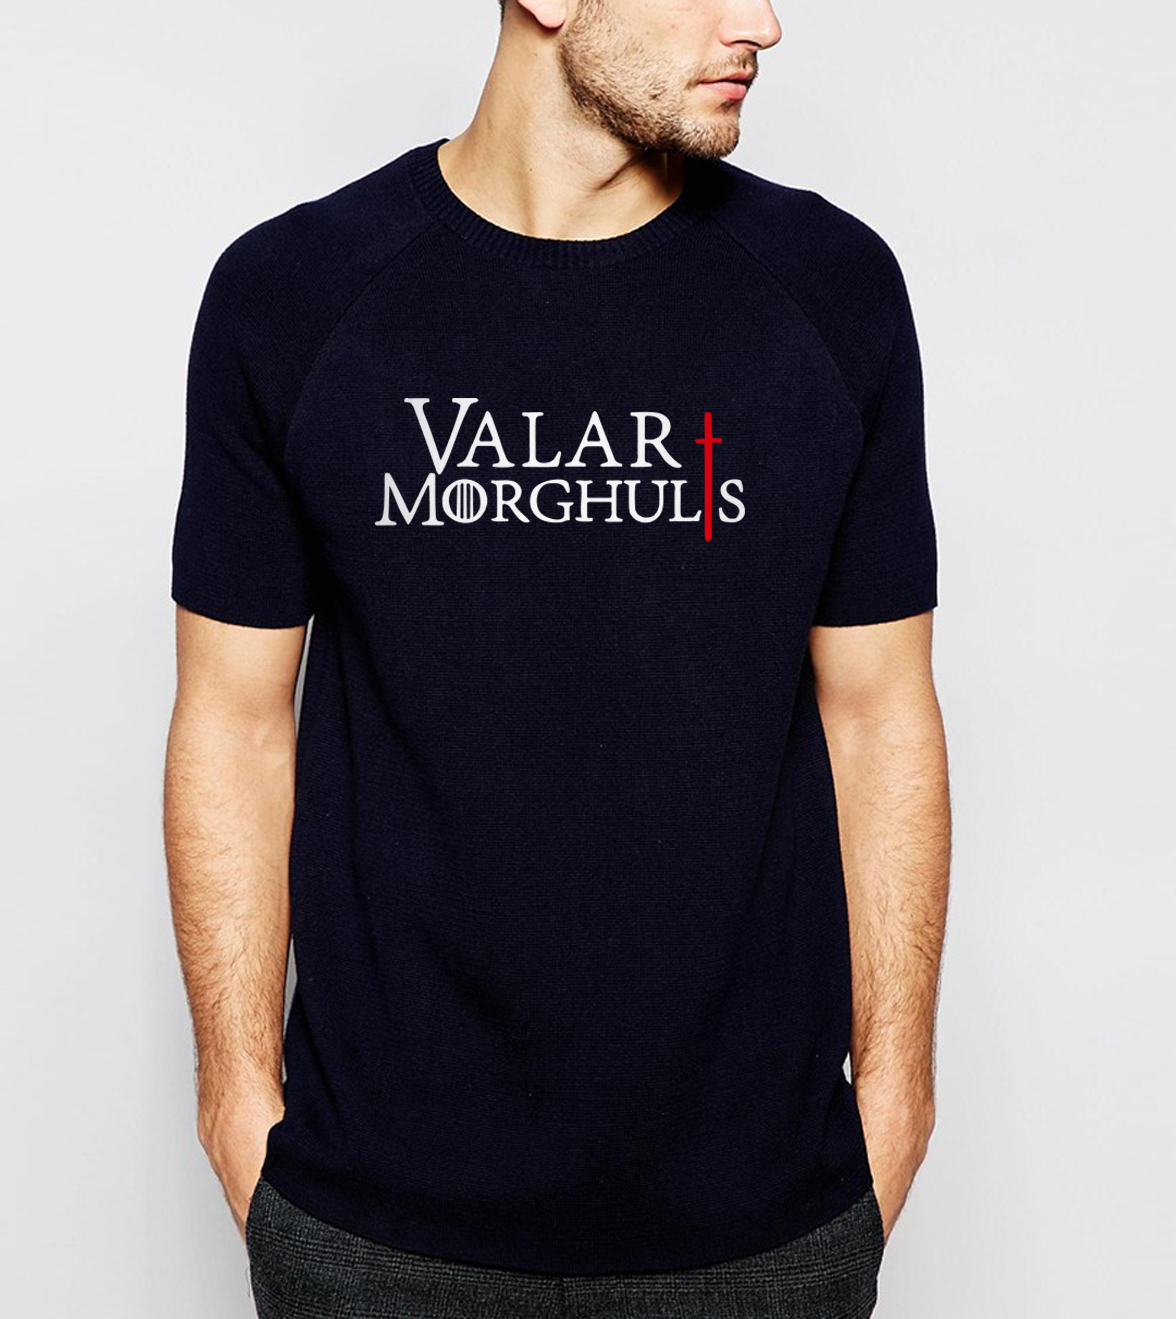 Hot Sale Game Of Thrones Valar Morghulis Printes T Shirt 2016 Summer Fashion Casual Short Sleeve